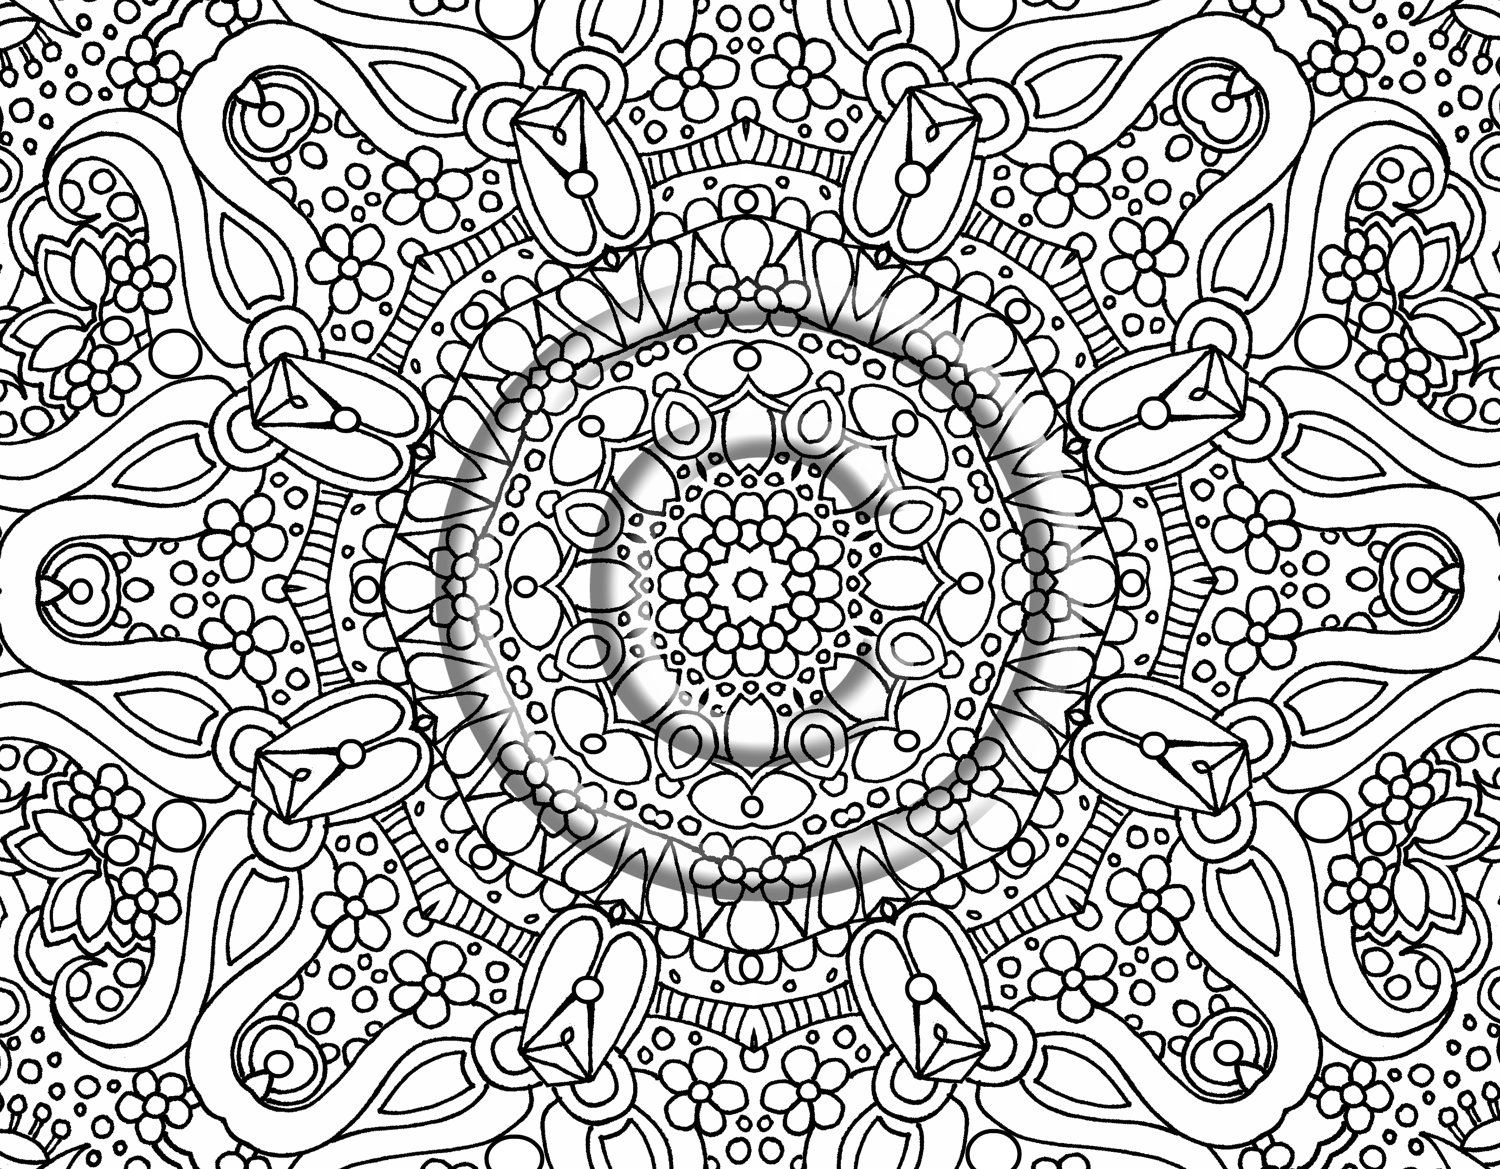 Free printable abstract coloring pages for adults for Coloring pages online